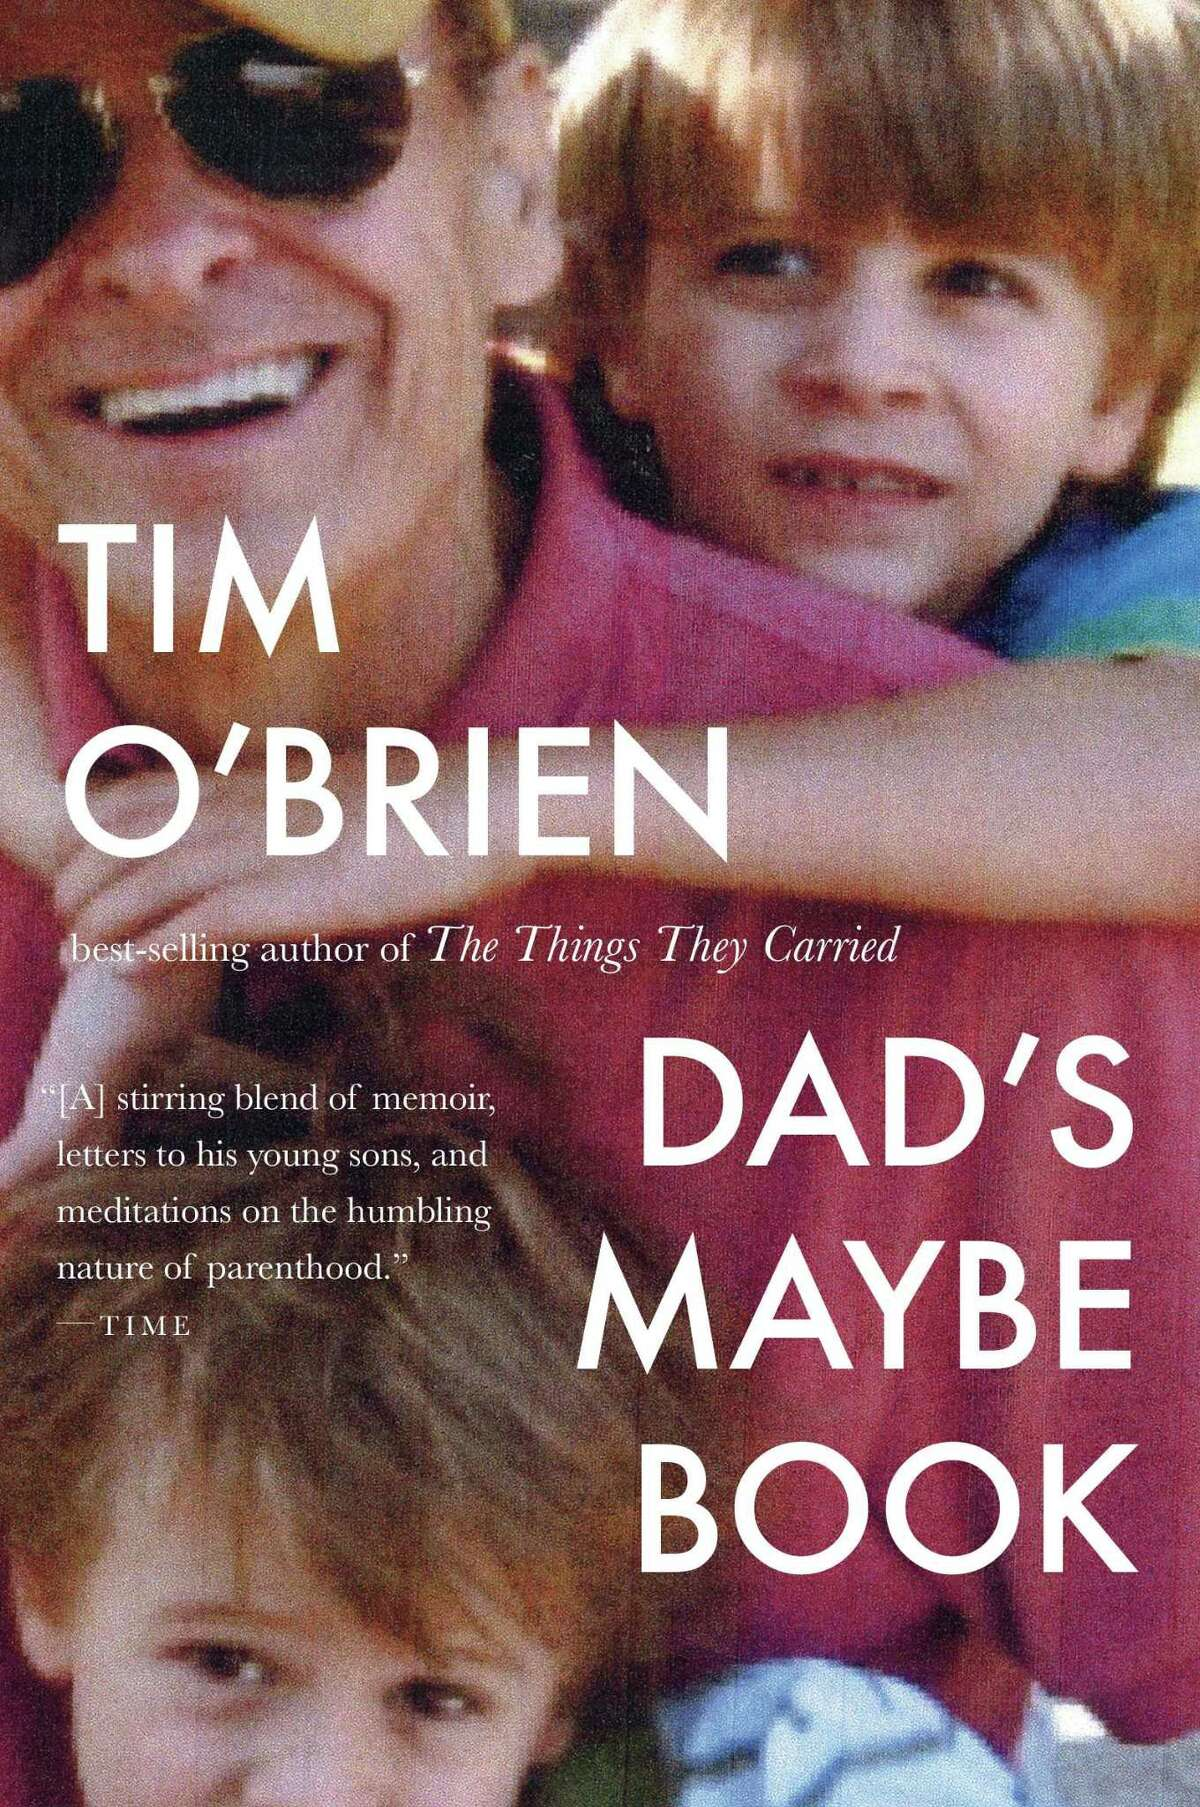 Tim O'Brien is the author of Dad's Maybe Book